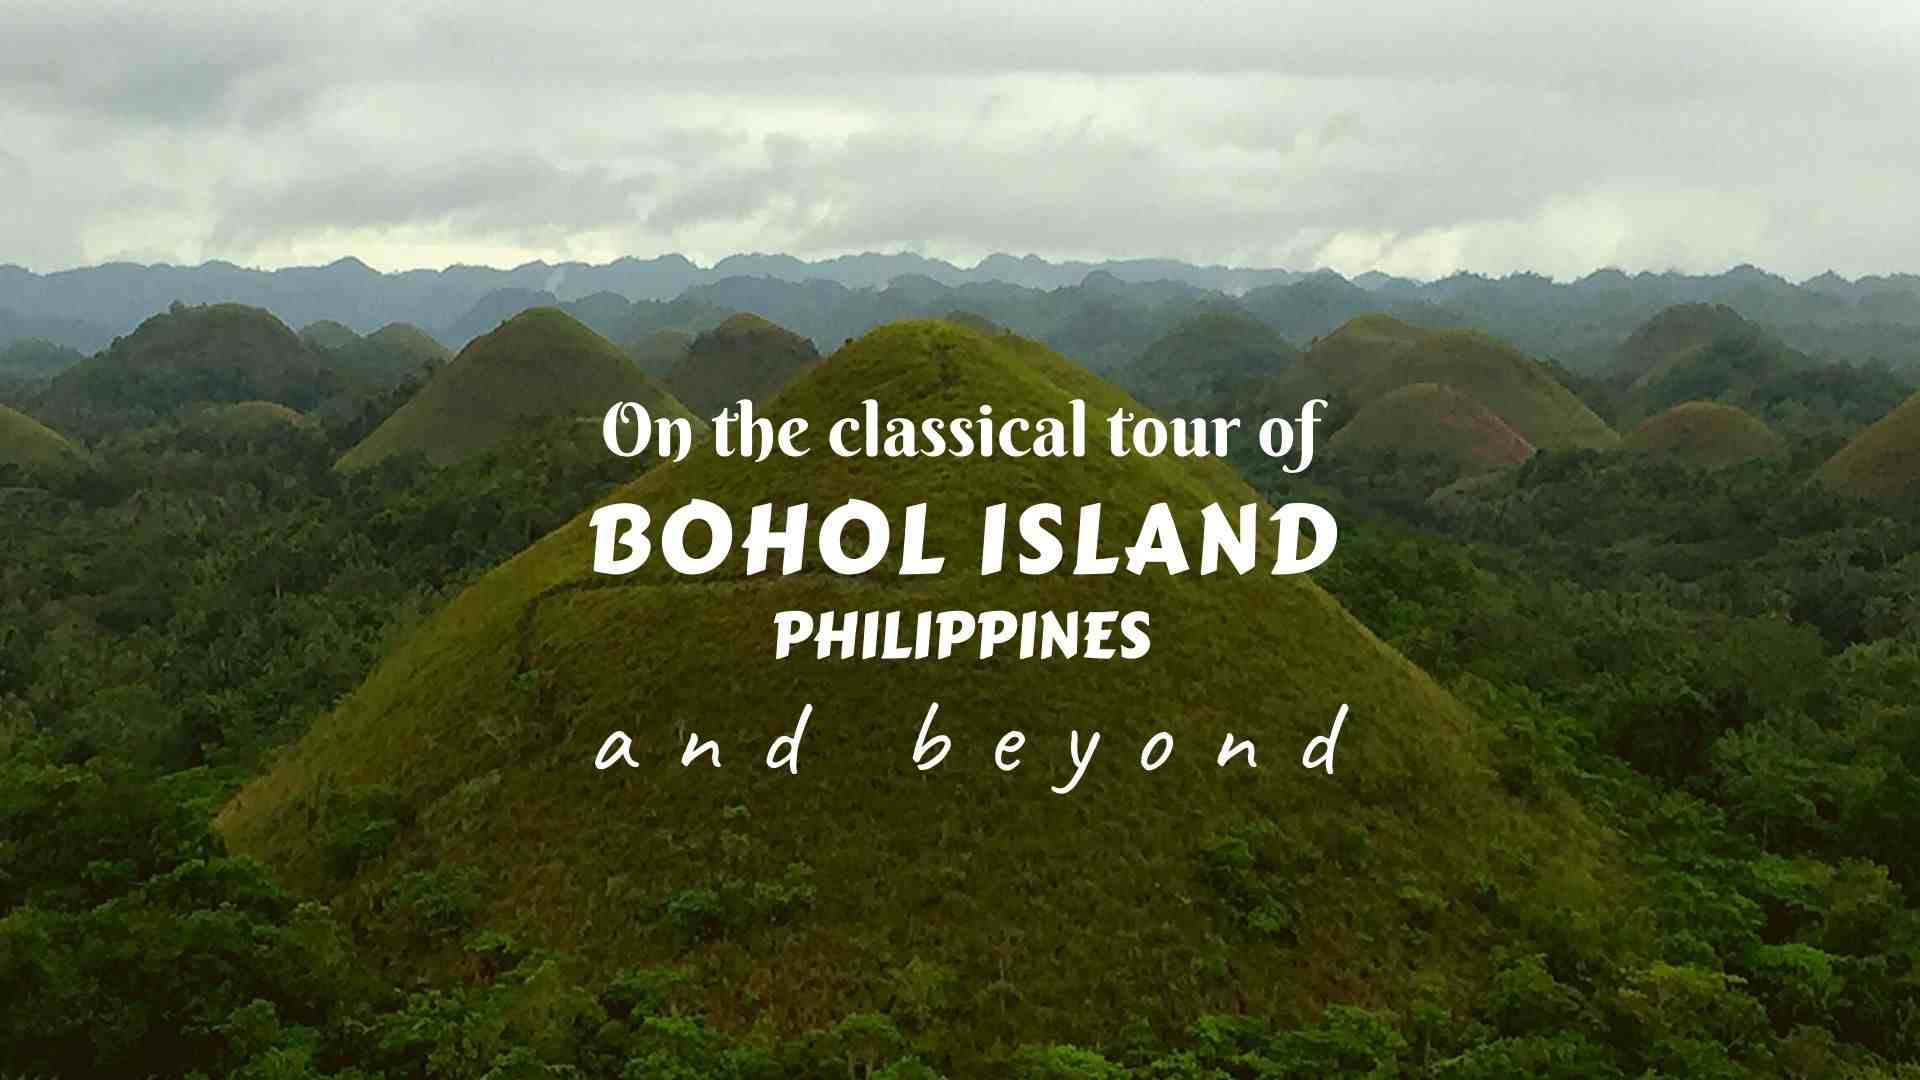 On the classical tour of Bohol Island of the Philippines and beyond